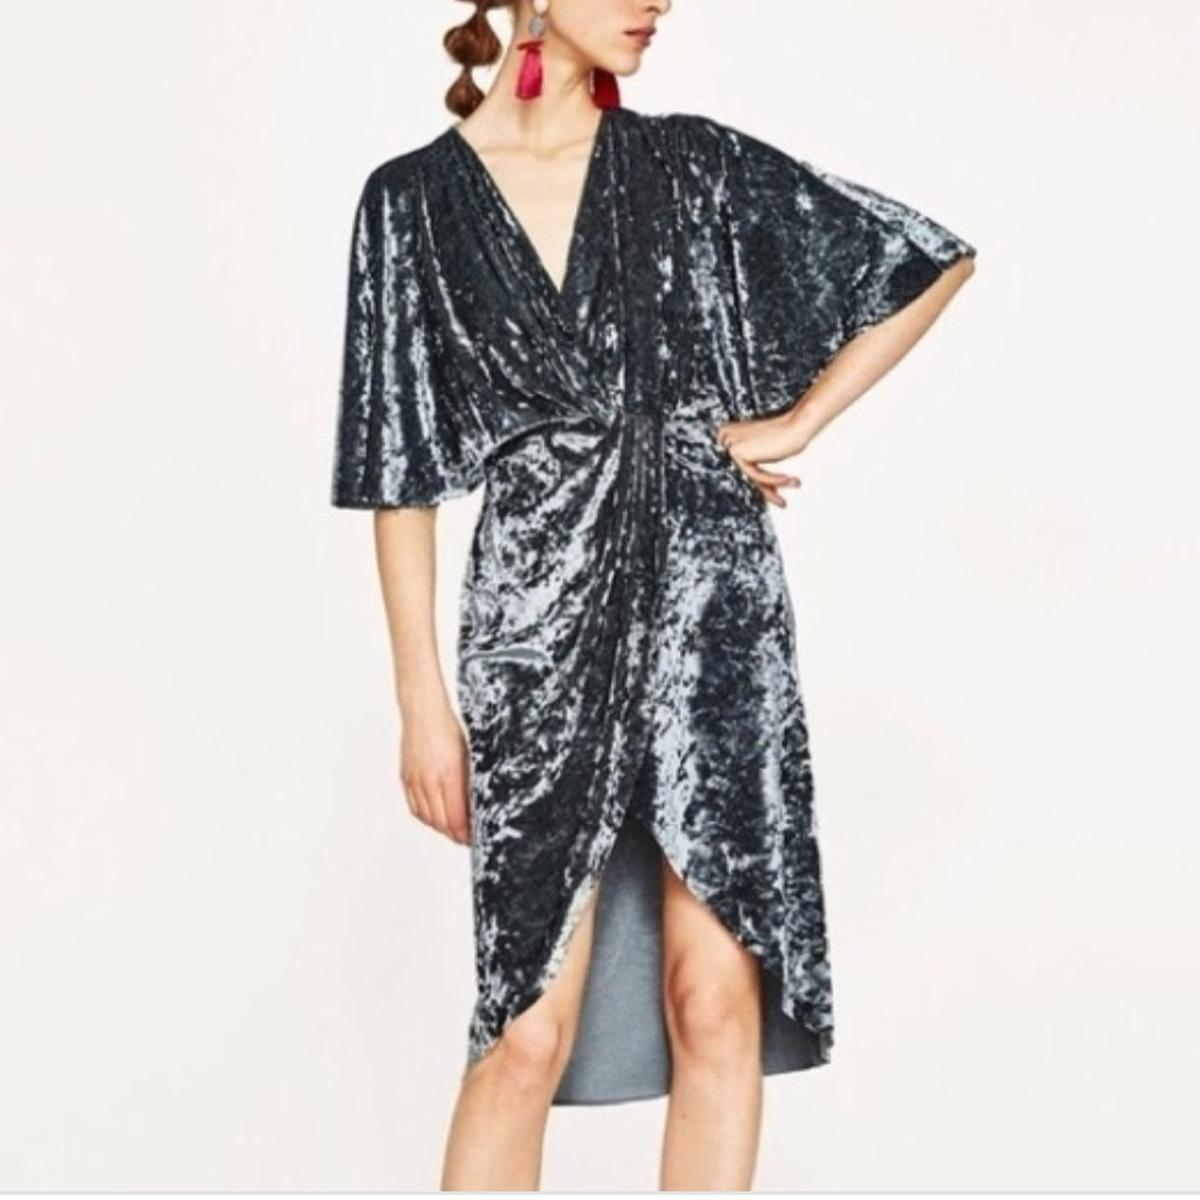 041434bb Zara Crossover Wrap Velvet Midi Dress in E15 London for £20.00 for ...